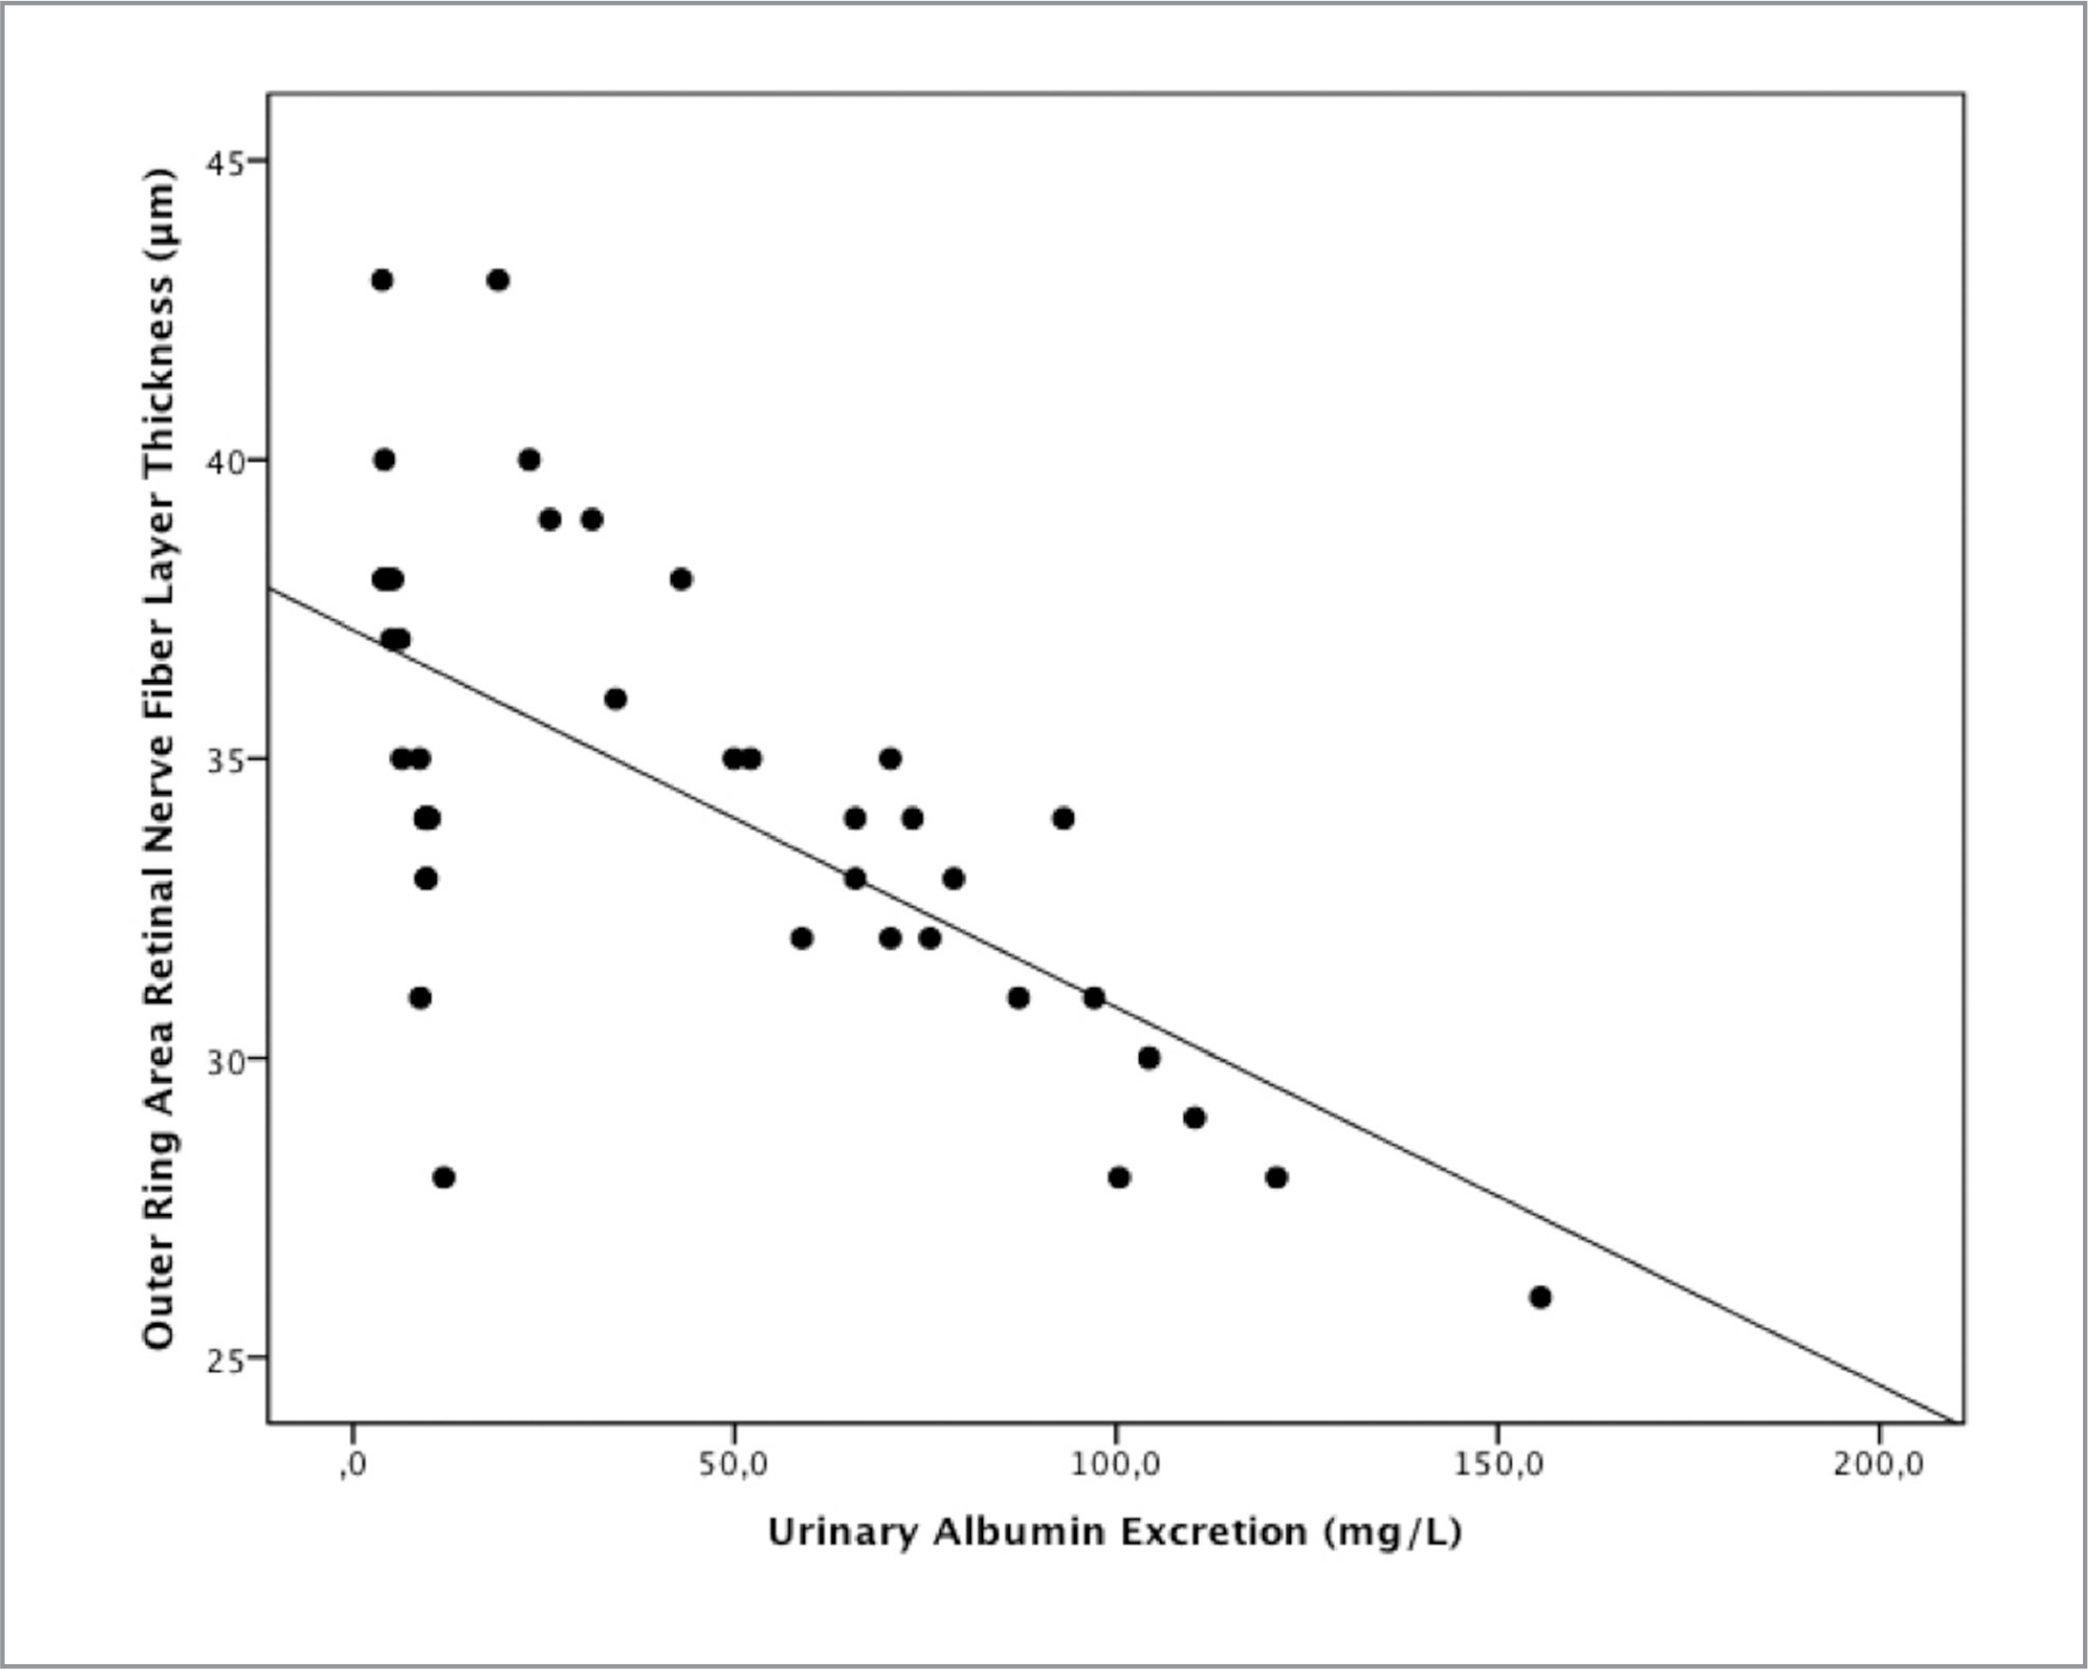 Correlation between retinal nerve fiber layer thickness in outer ring area and urinary albumin excretion; Pearson's r = −0.66, P < .001.